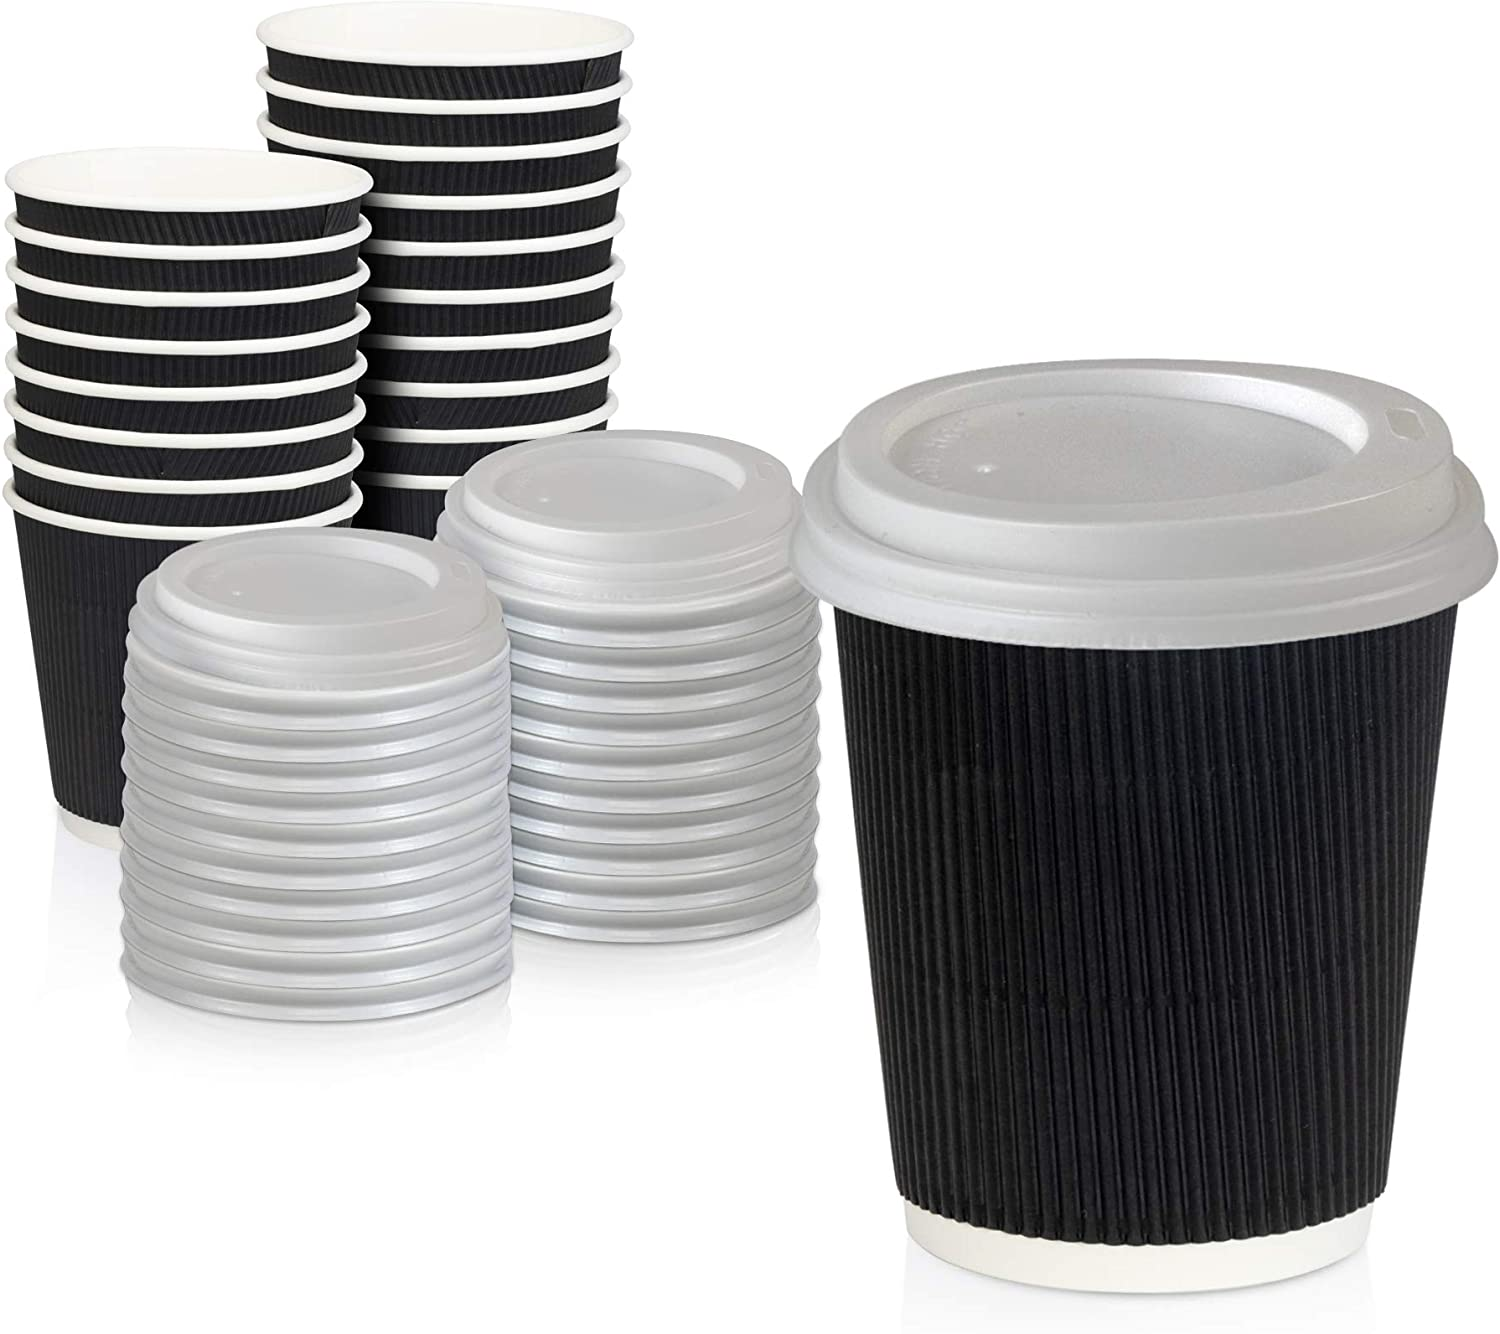 [50 Pack] Disposable Hot Cups with Lids - 8 oz Black Double Wall Insulated Ripple Sleeves Coffee Cups with White Dome Lid - Kraft Paper Cup for To Go Chocolate, Tea, and Cocoa Drinks